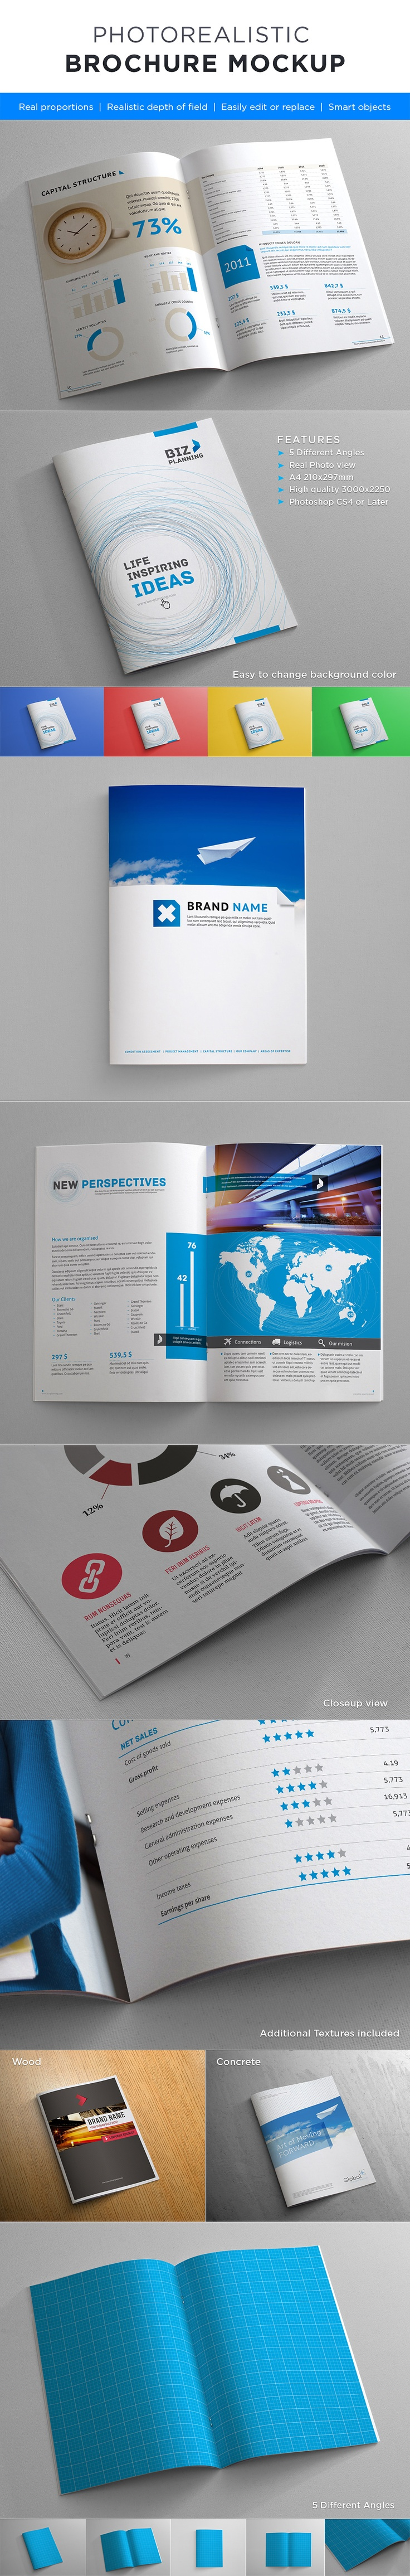 Photorealistic Brochure Mock-up